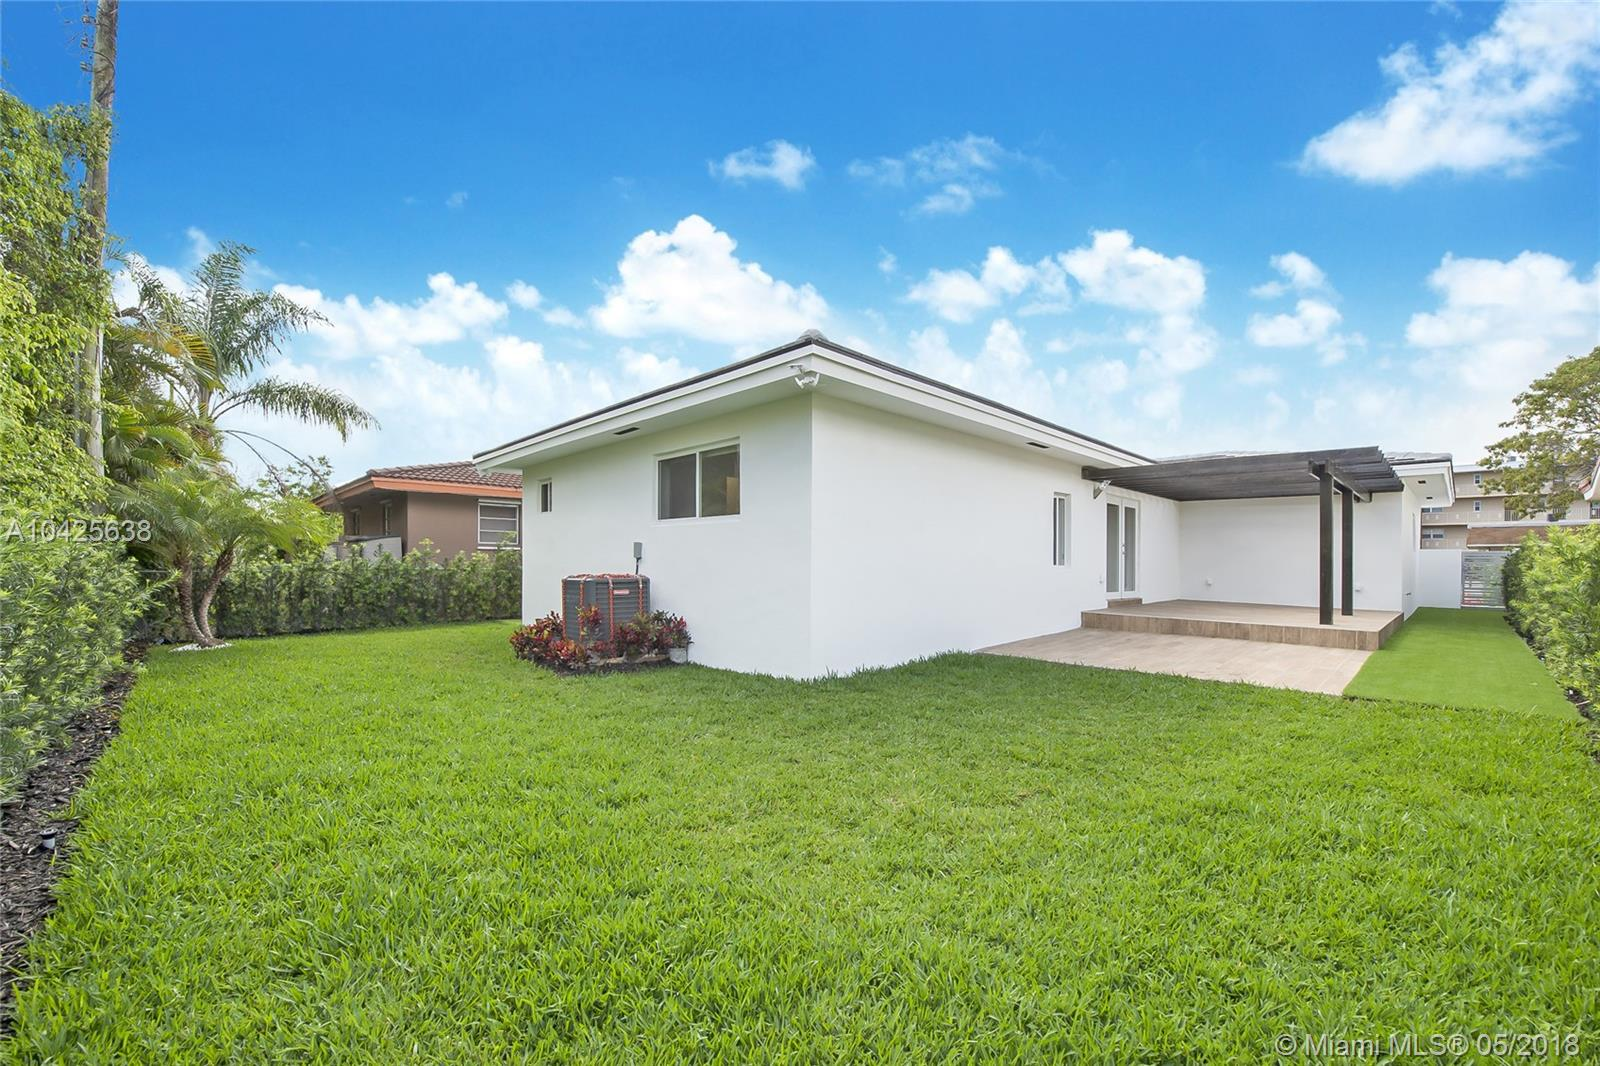 1937 RED RD, Coral Gables , FL 33155